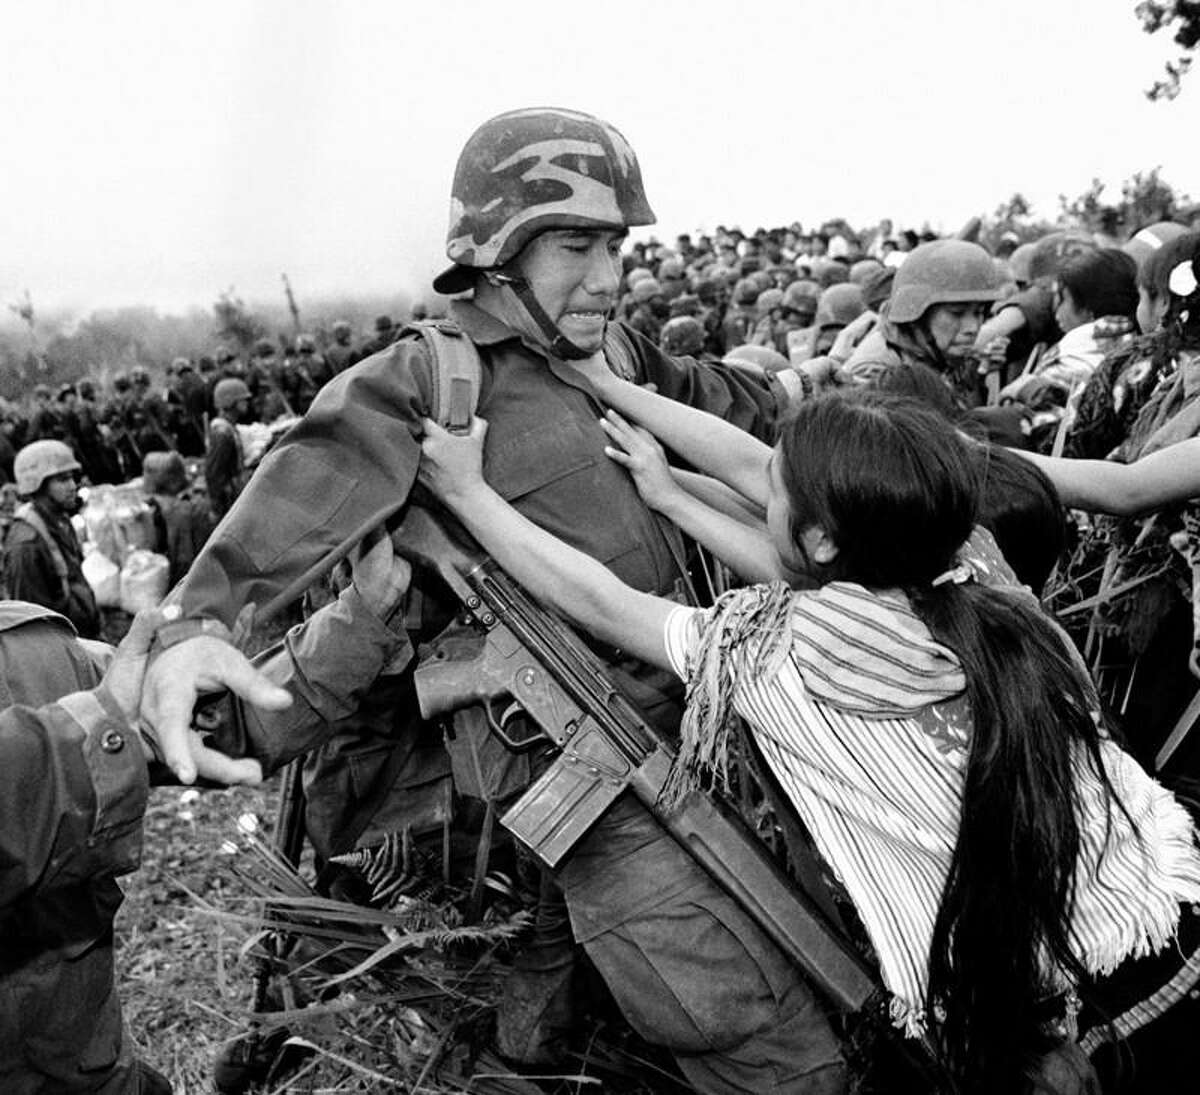 """Mexico City-based photographer Pedro Valtierra specializes in capturing iconic moments from Mexico's modern history. His work is featured in """"Imagenes En Conflicto,"""" a solo exhibit at the Mexican Cultural Institute. The show is part of Fotoseptiembre USA."""